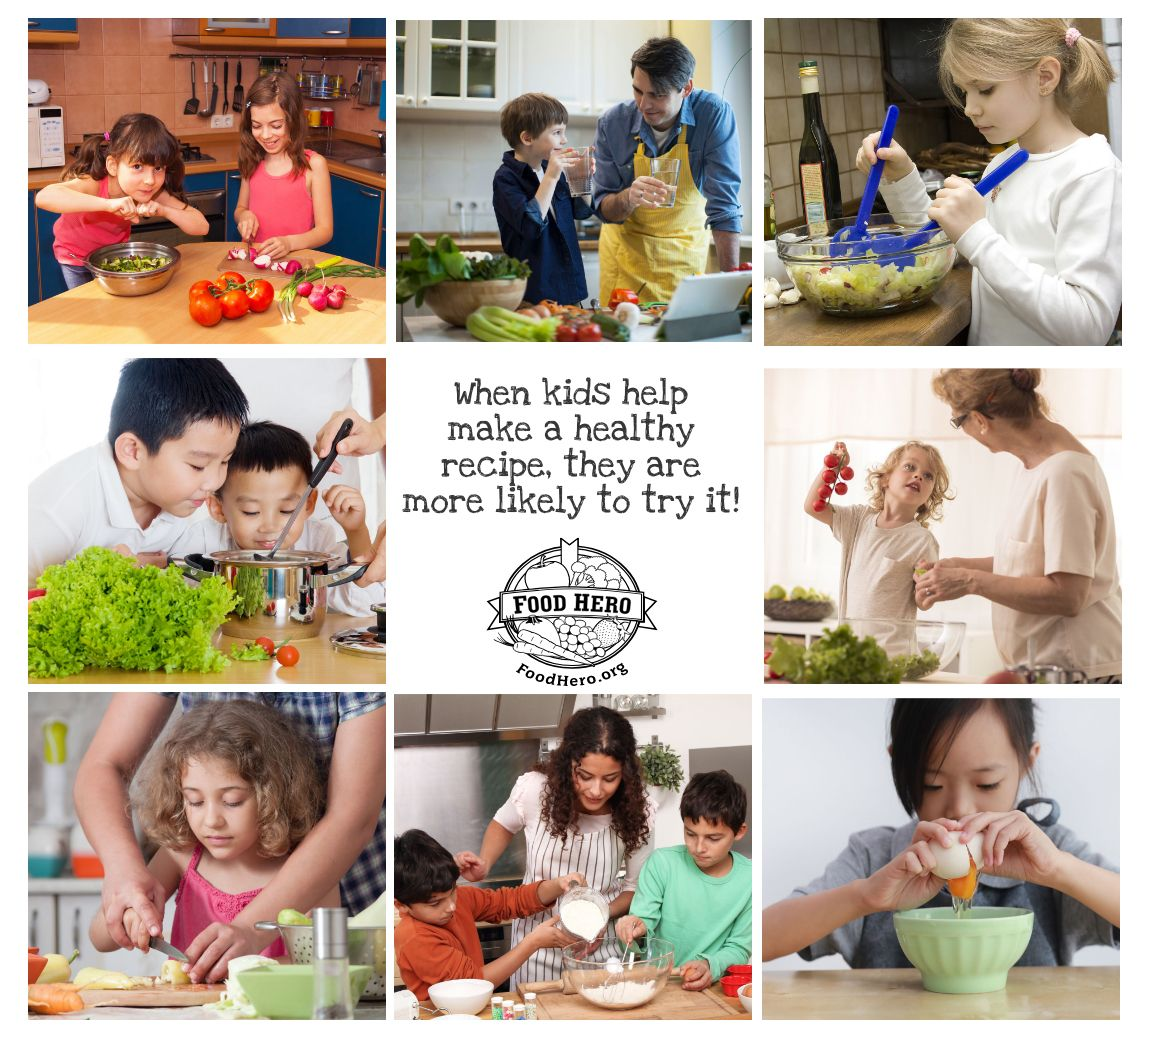 Did You Know That We Have A Kidssection On Our Page Full